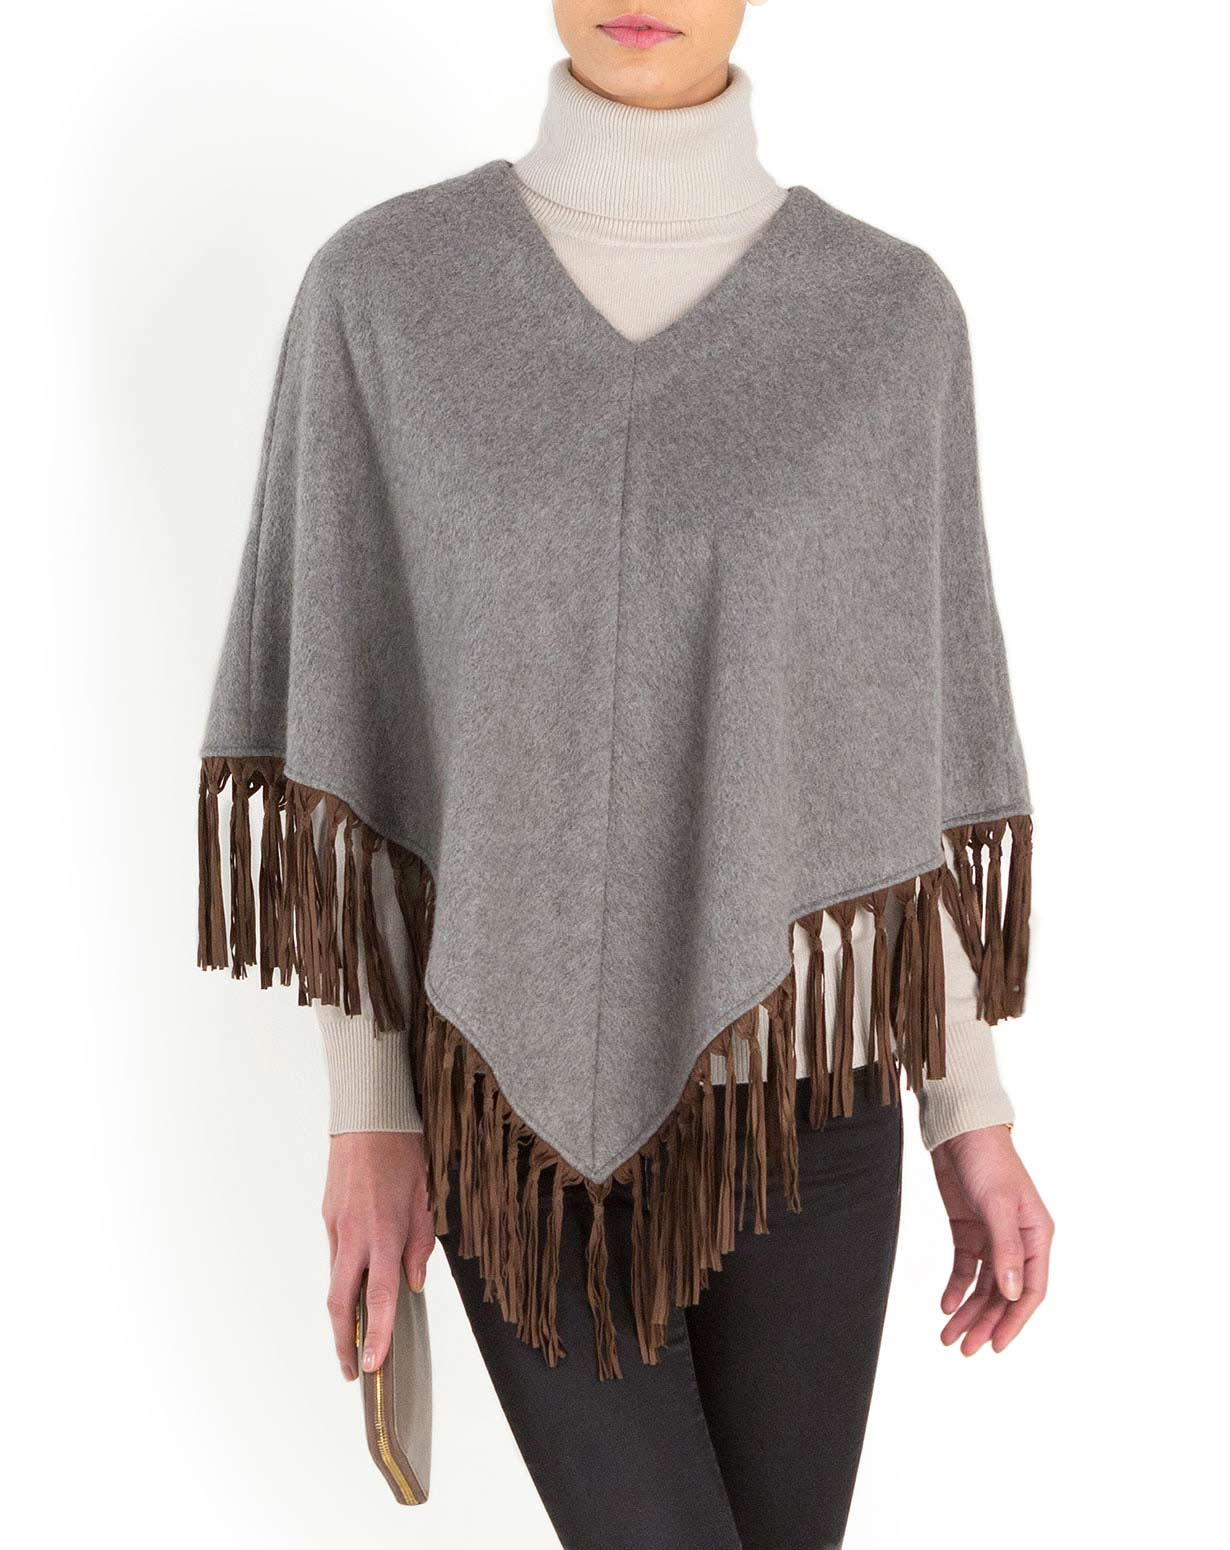 Exclusive Woven Cashmere Poncho with Leather Fringes